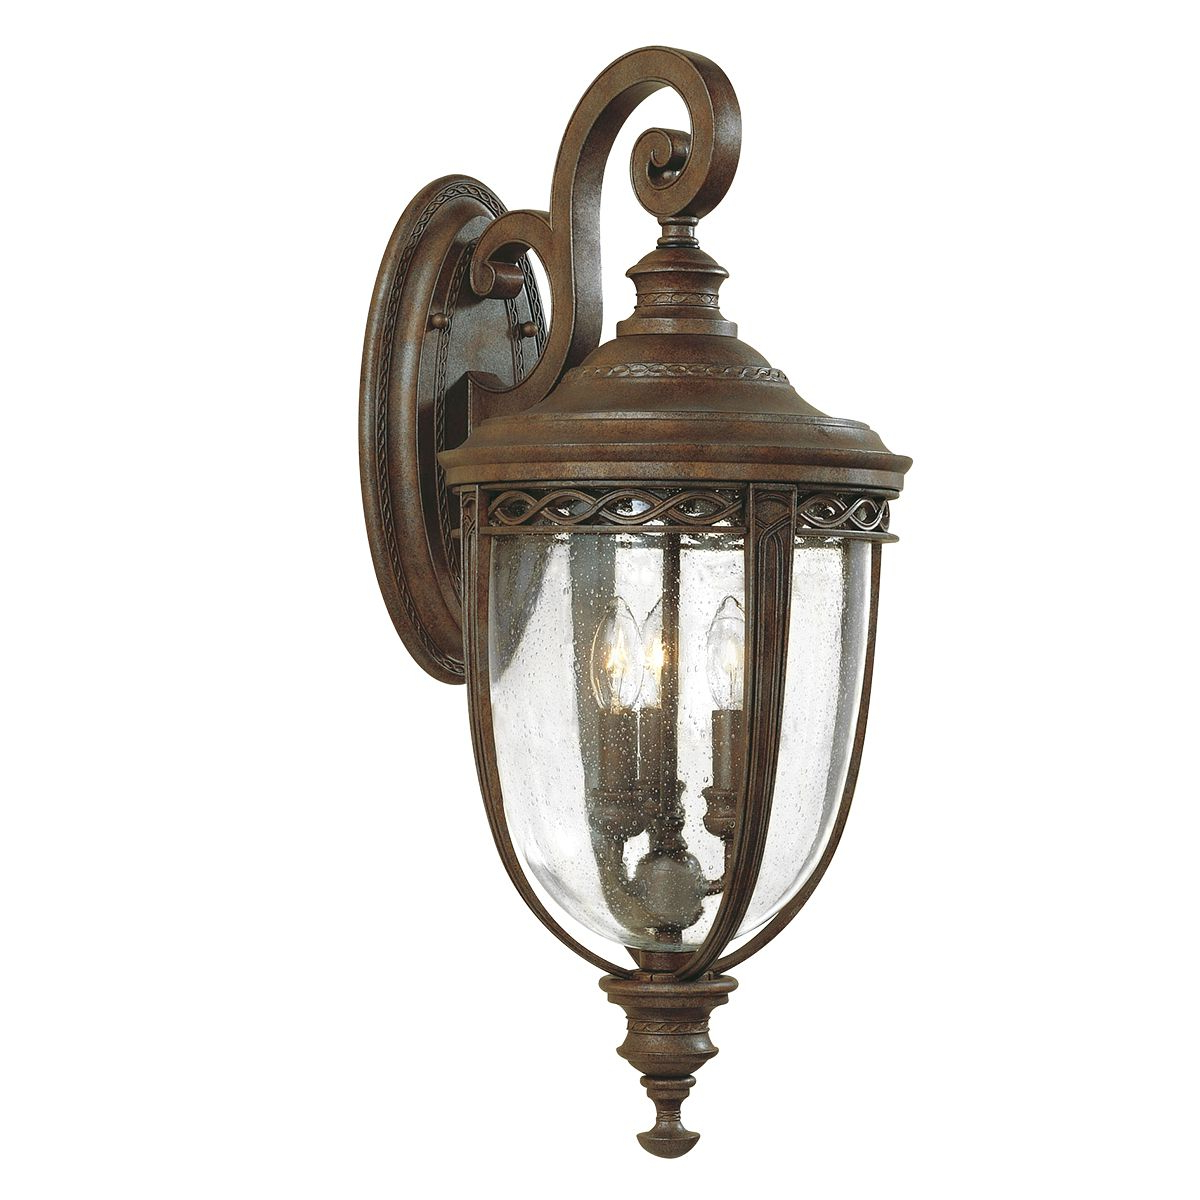 Meunier Glass Outdoor Wall Lanterns Regarding Newest English Bridle Large Outdoor Wall Lantern In A Bronze (View 2 of 15)